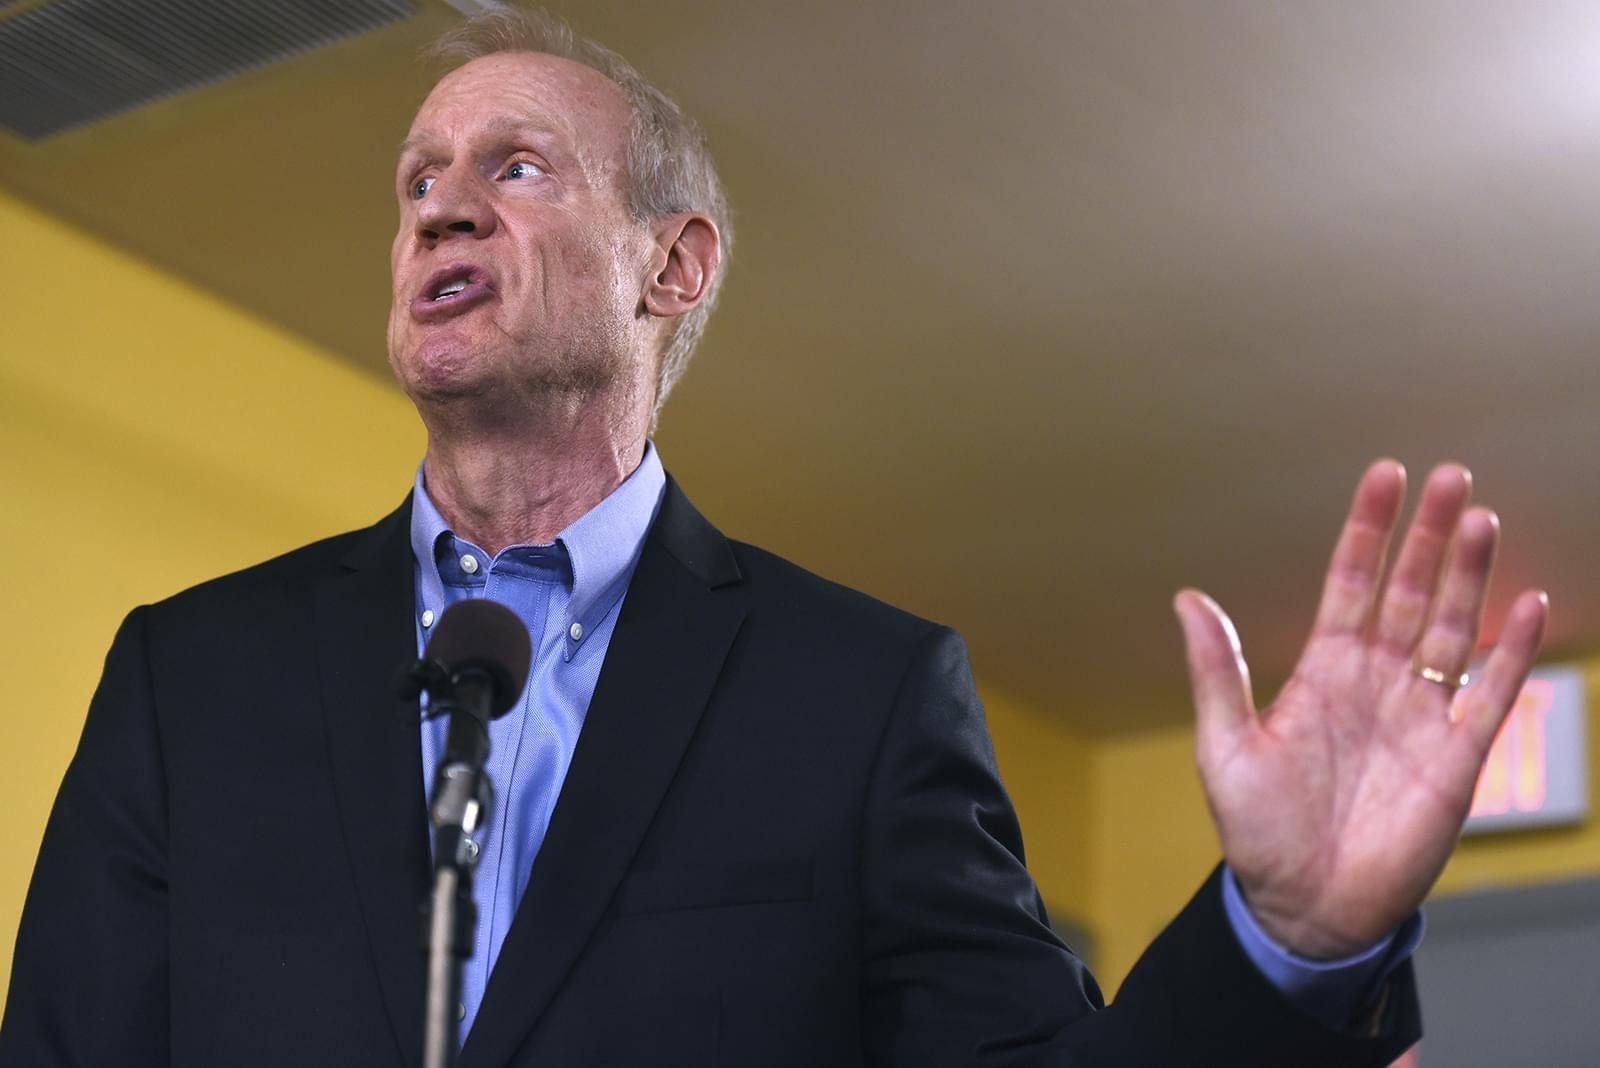 In this July 5, 2017 file photo, Illinois Gov. Bruce Rauner speaks during a news conference in Chicago.